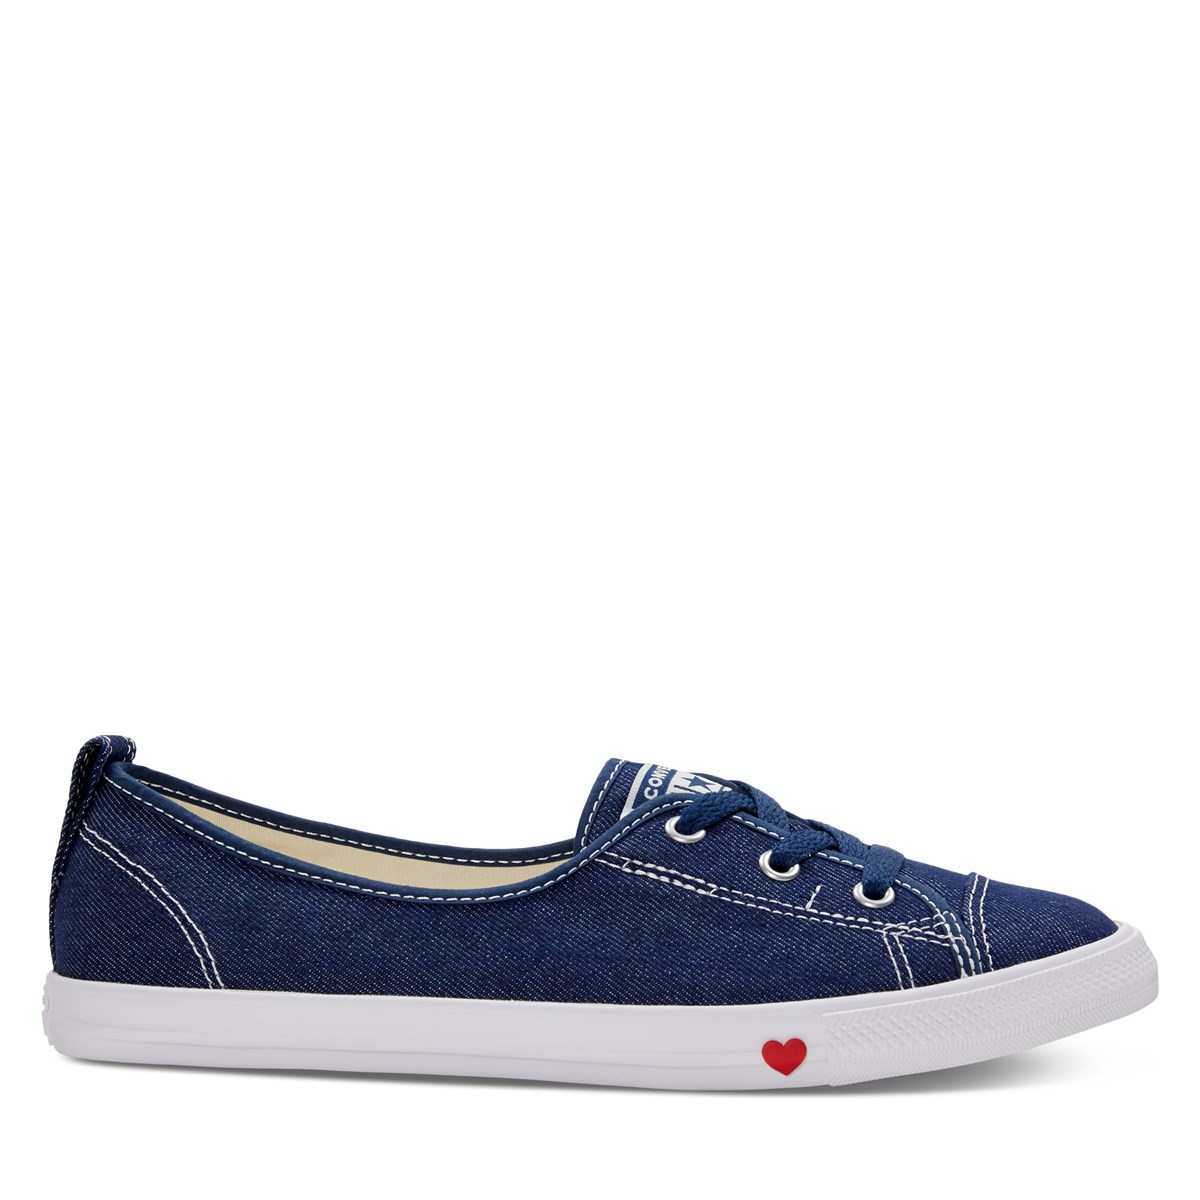 Women's Chuck Taylor All Star Ballet Slip-Ons in Navy